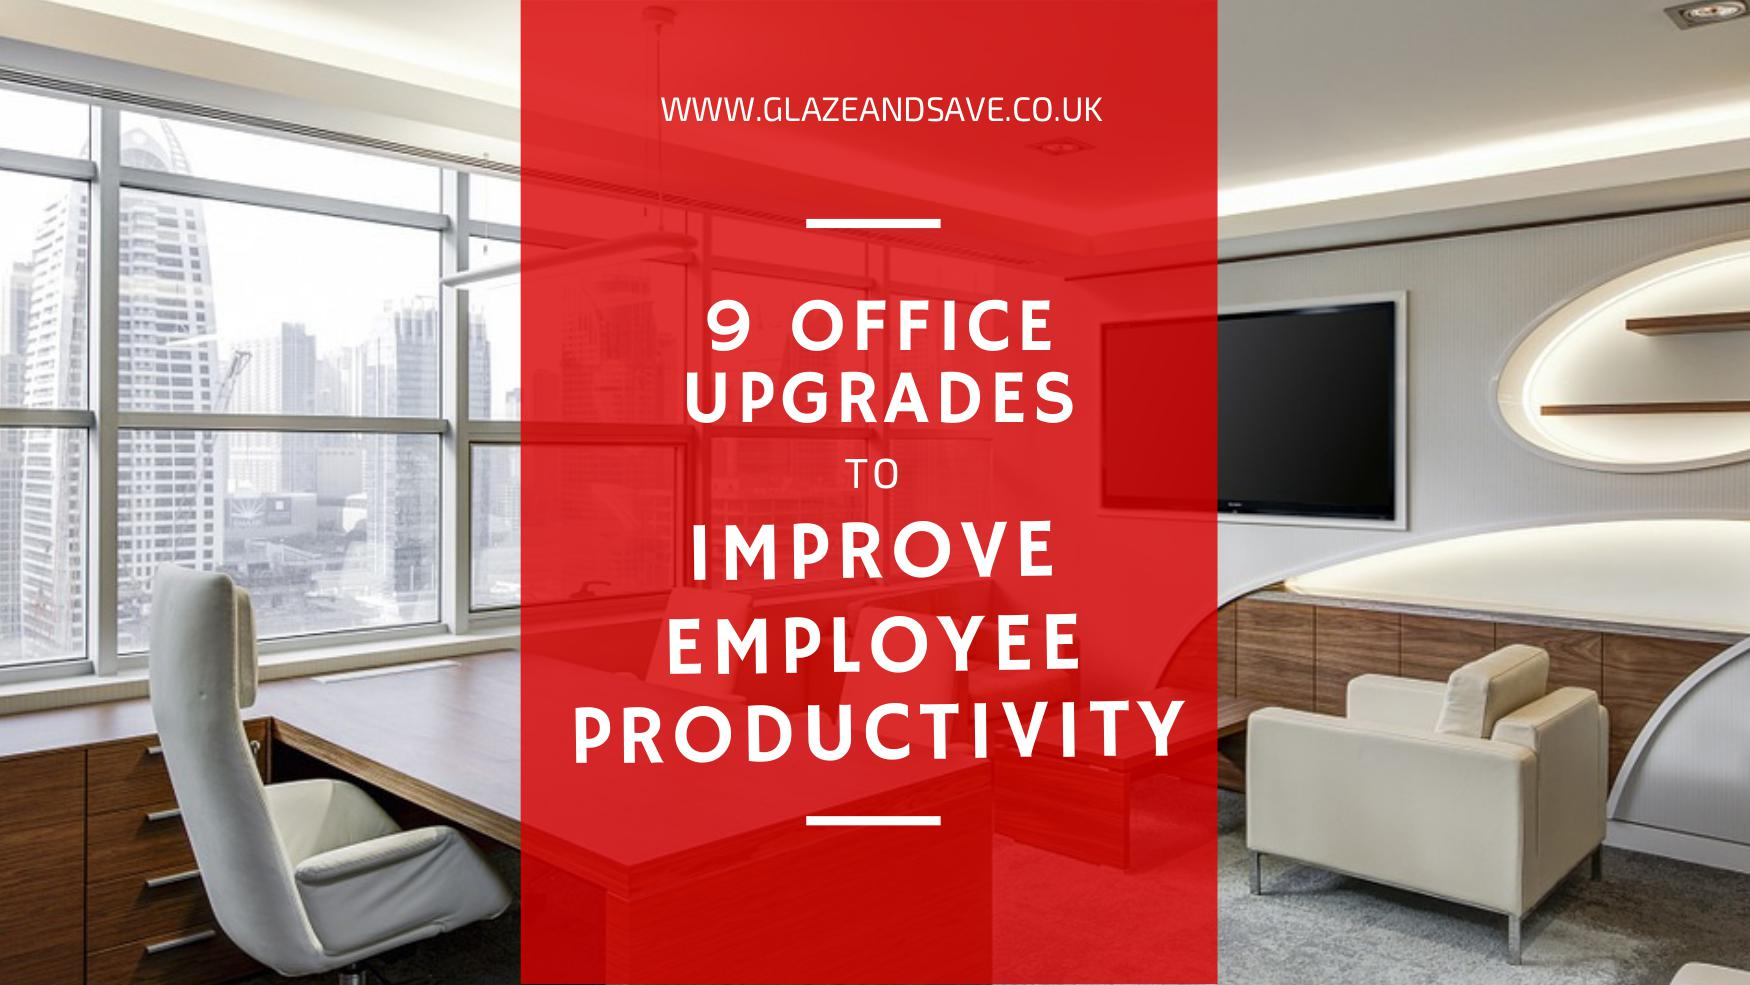 Nine office upgrades to increase employee productivity by Glaze & Save, bespoke magnetic secondary glazing and draught proofing based in Perth, Scotland